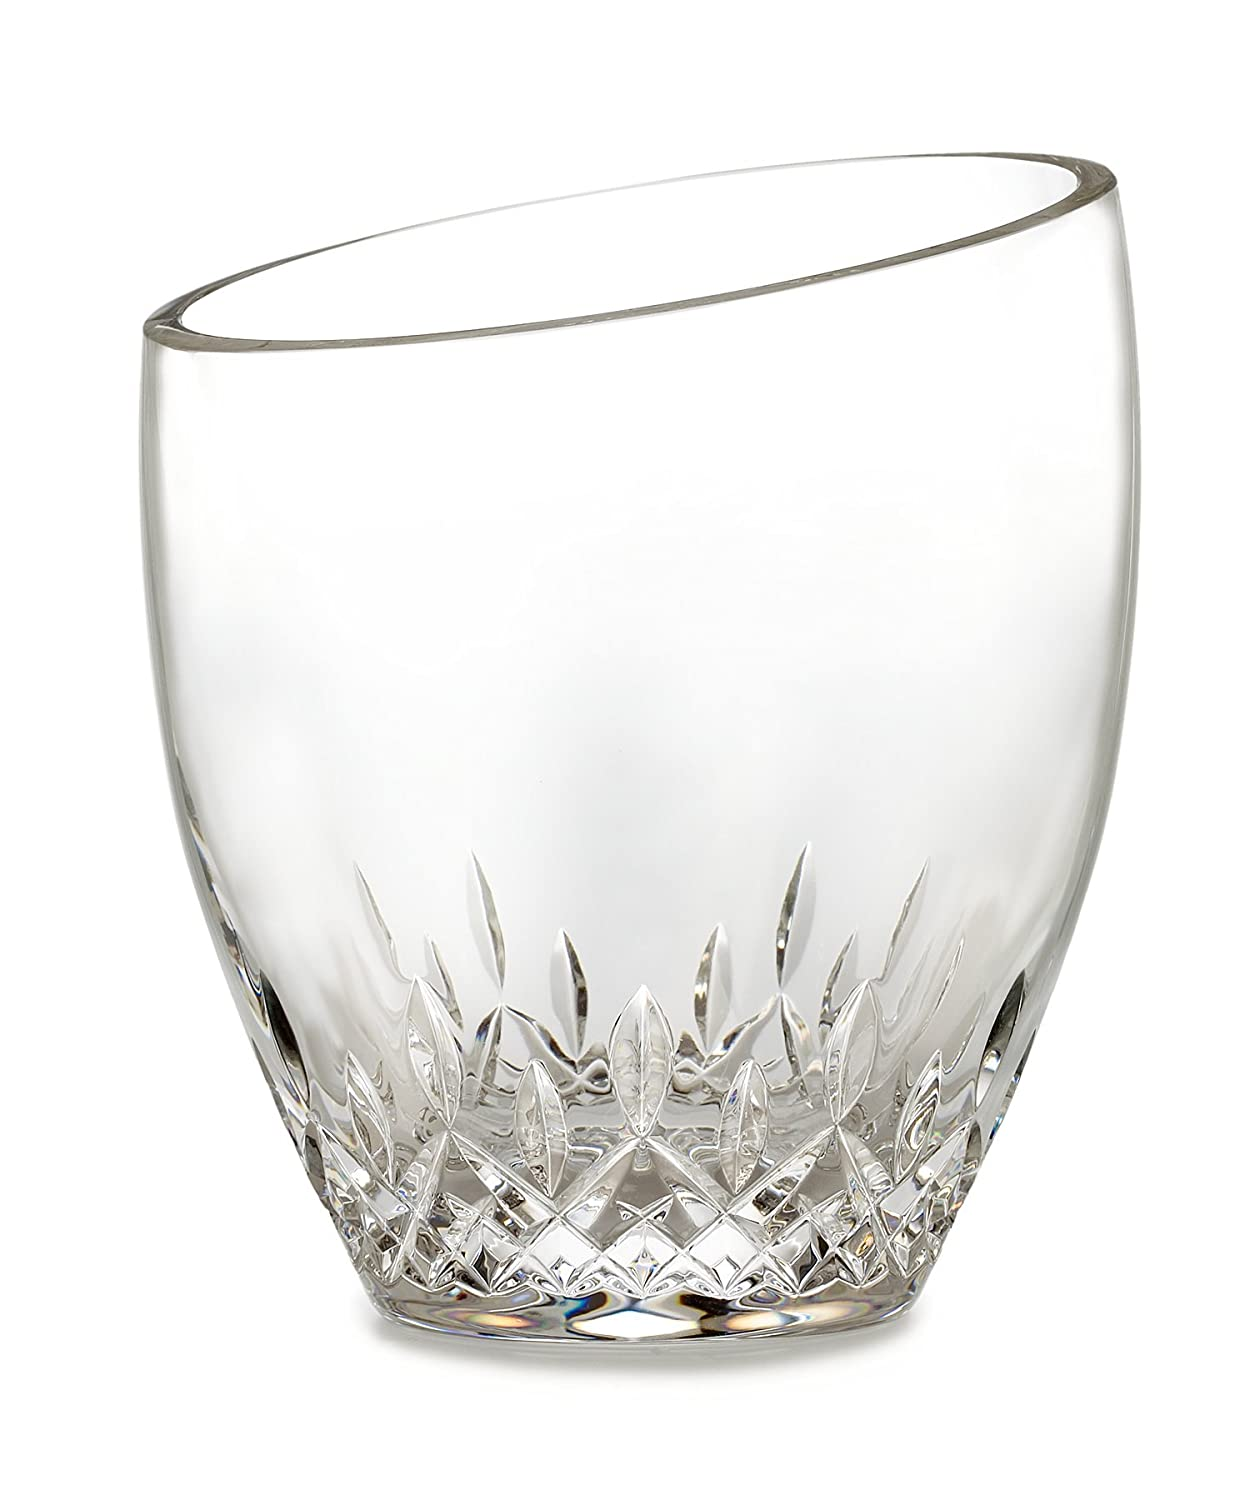 Waterford Crystal Lismore Essence Ice Bucket 151747